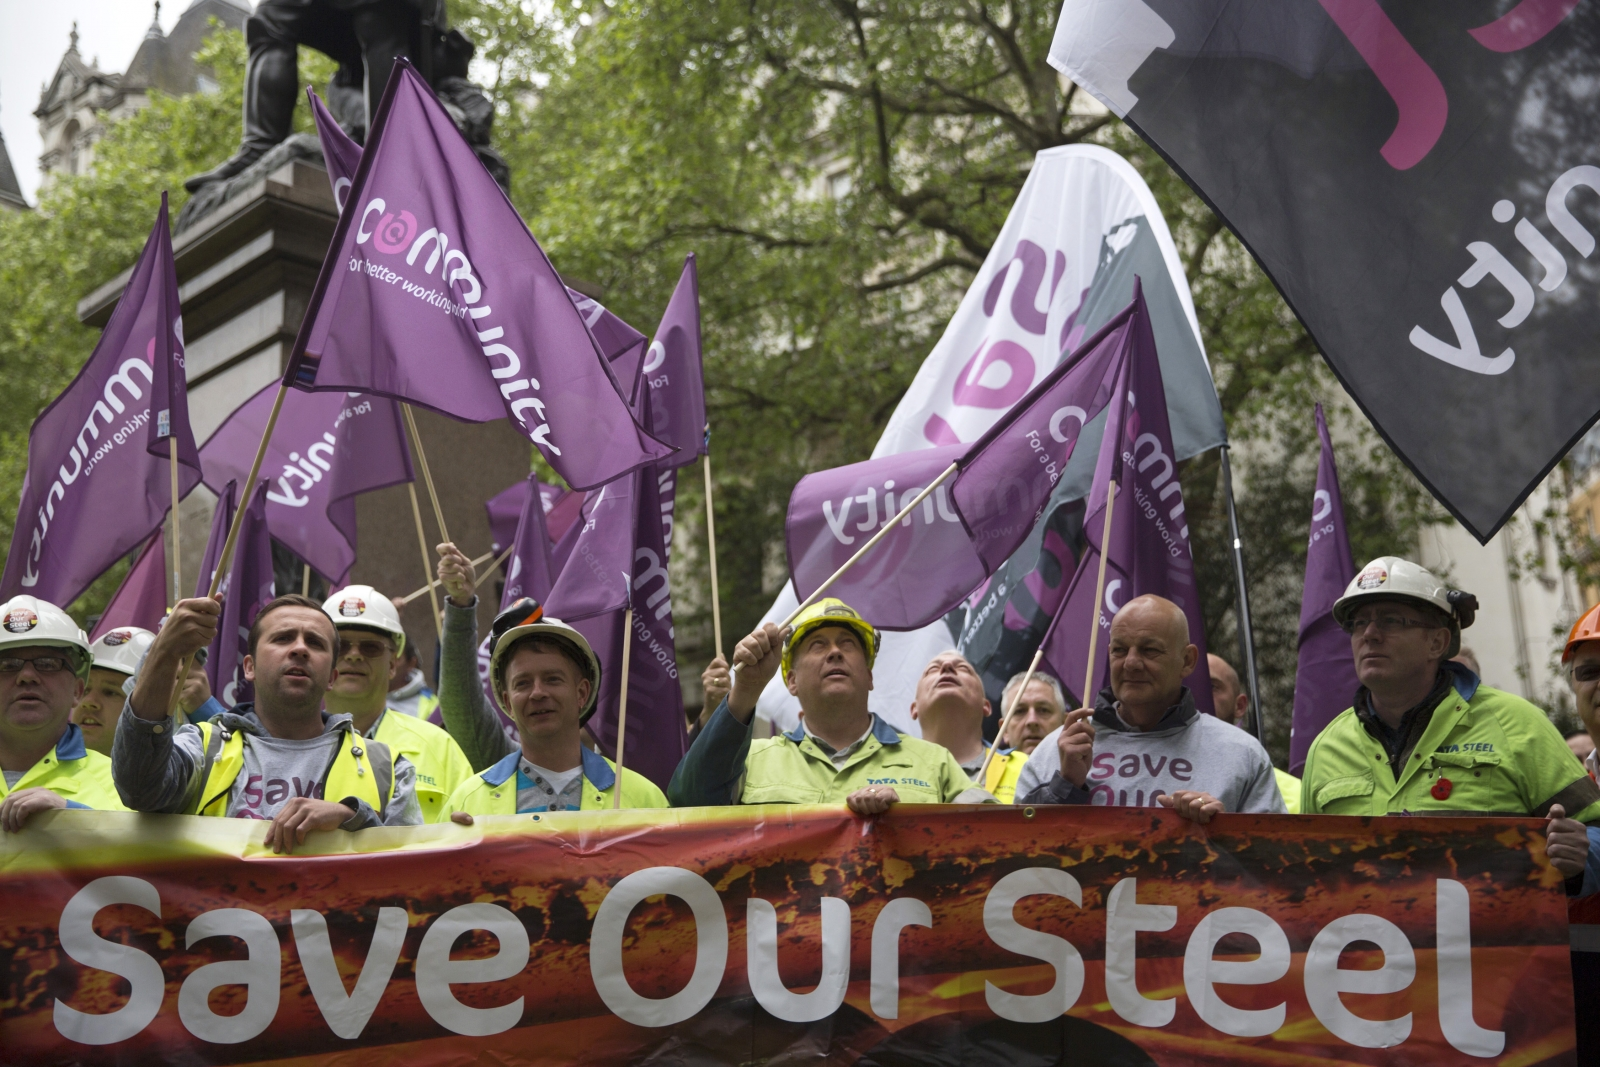 """Tata Steel could consider retaining UK business but """"lots of focus only on a sale"""", executive director says"""